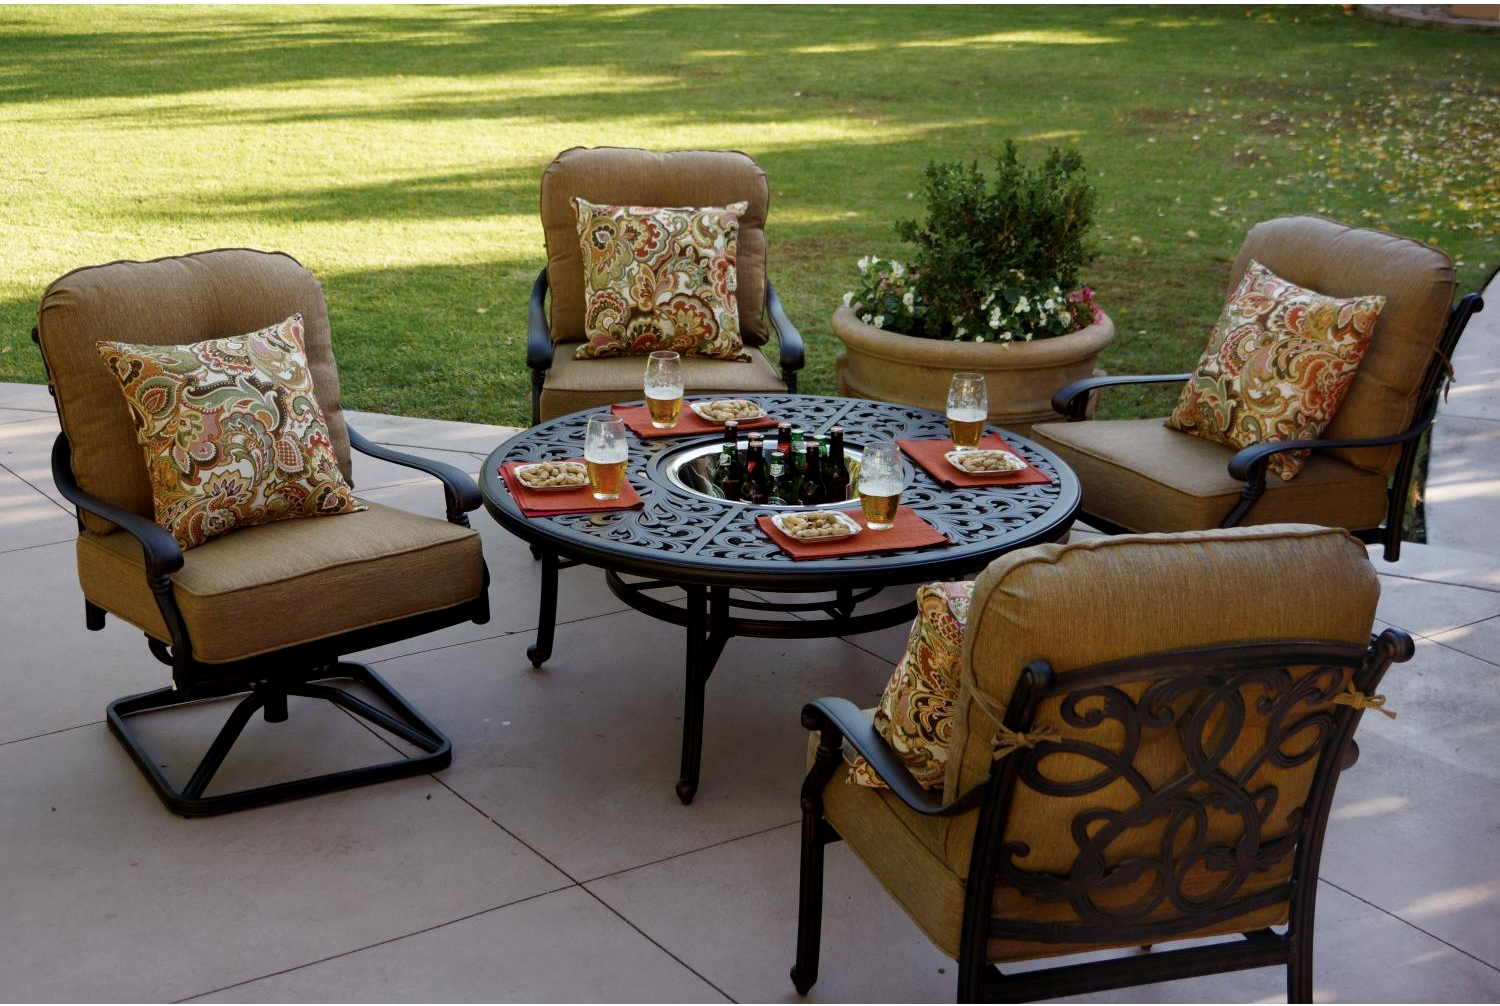 Patio Furniture Deep Seating Chat Group Cast Aluminum w/Ice Bucket Tea Table 5pc Santa Monica